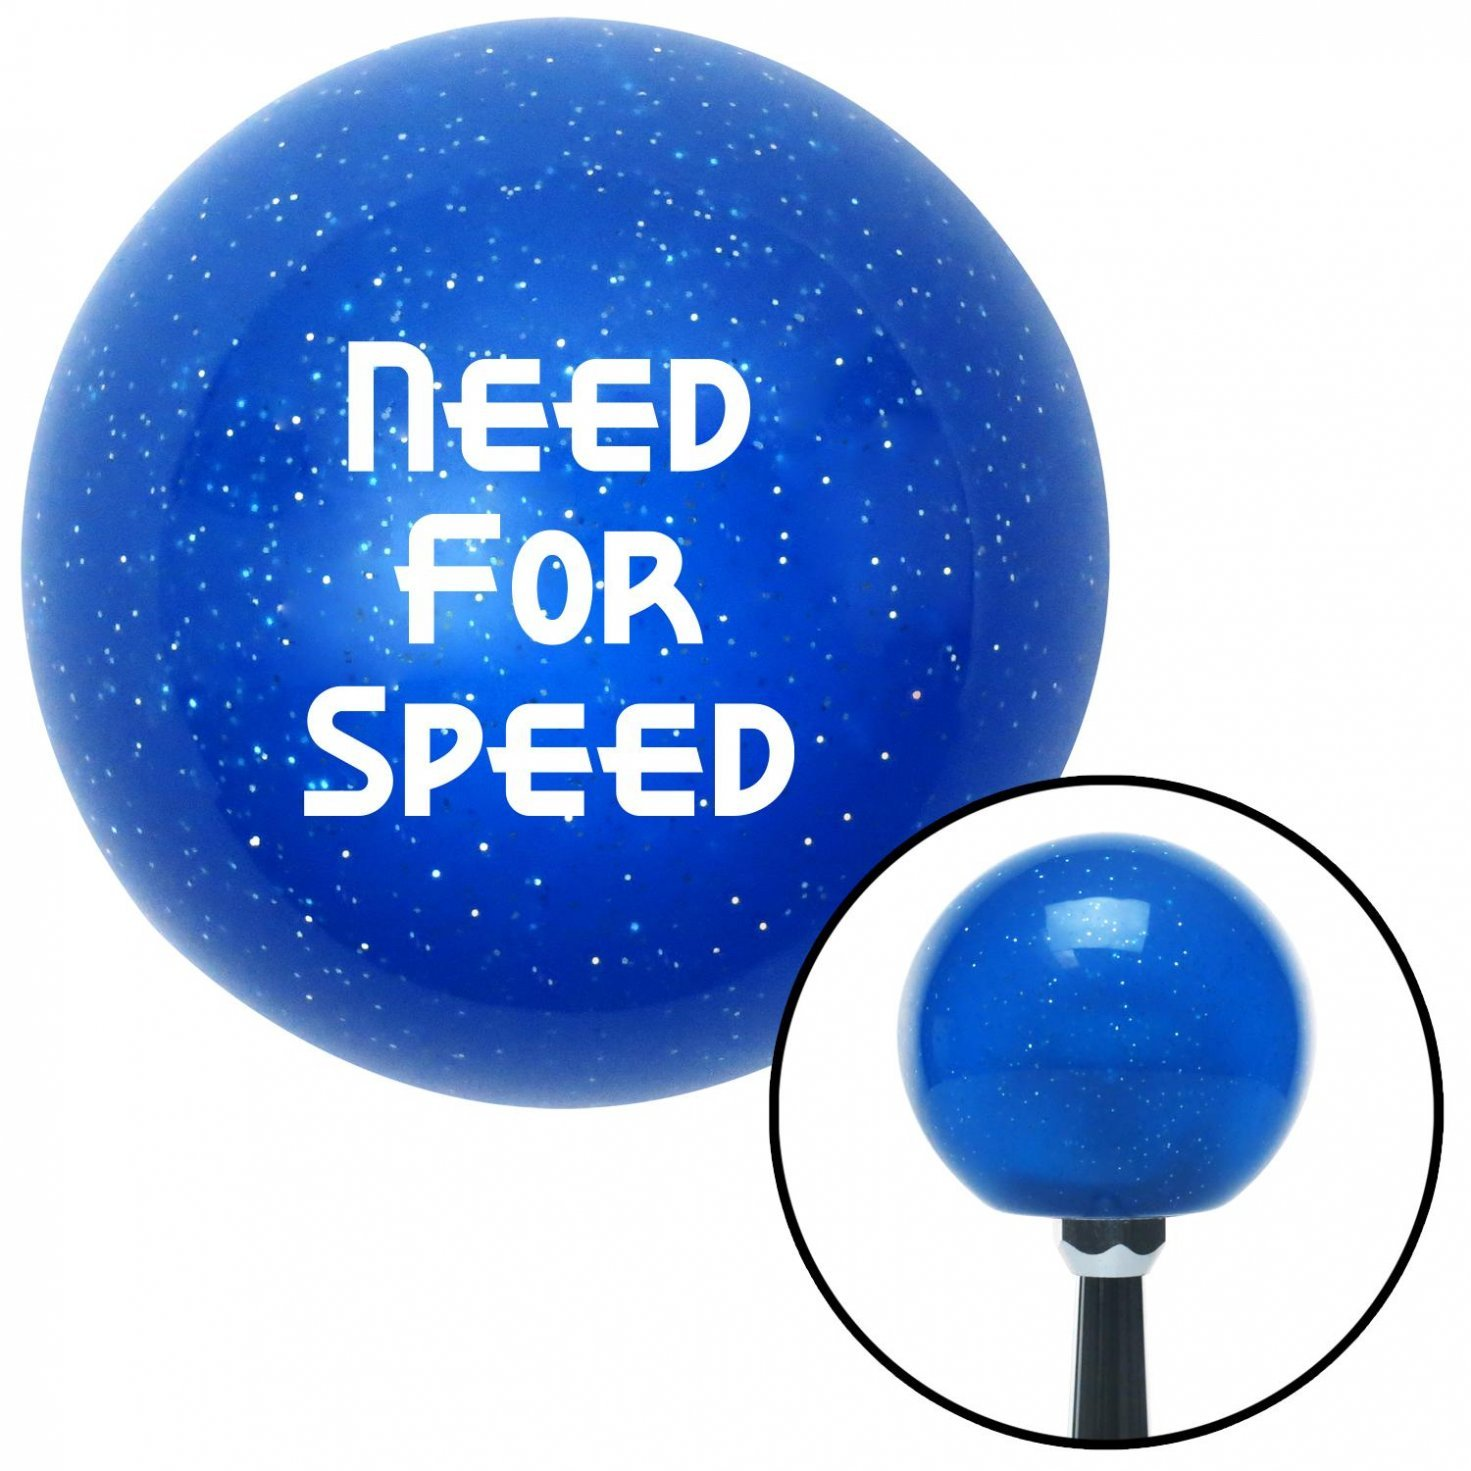 White Need for Speed American Shifter 21379 Blue Metal Flake Shift Knob